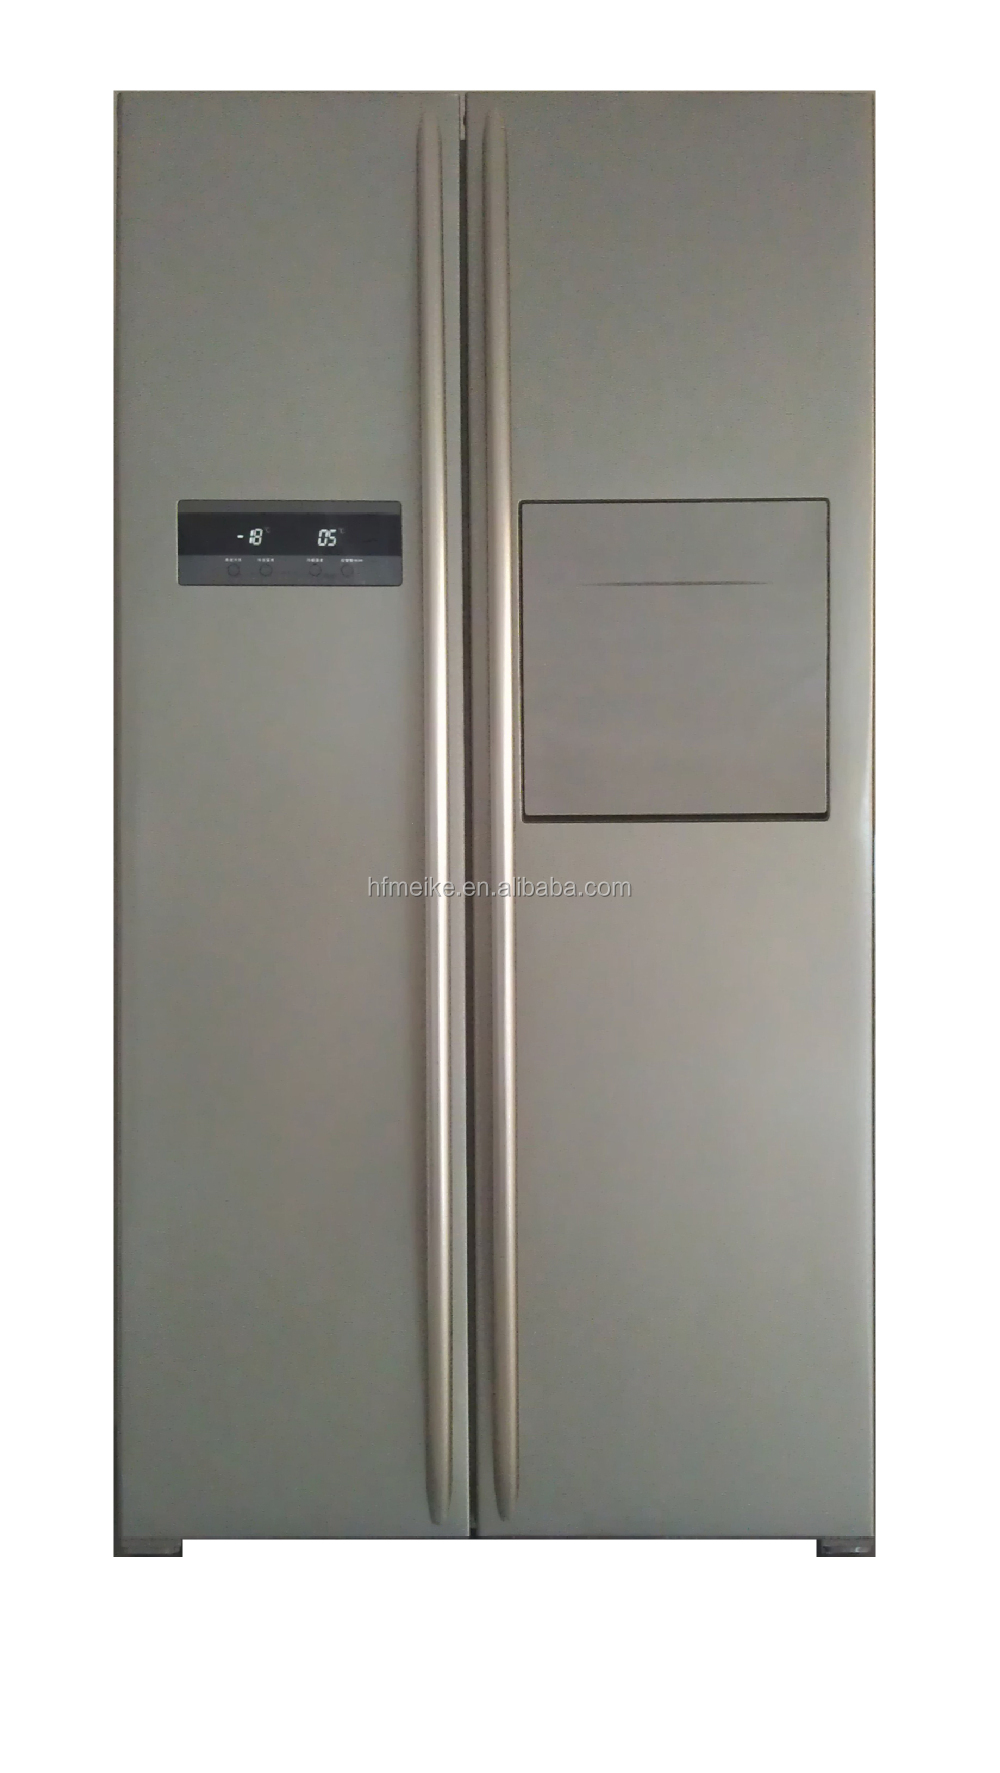 High end french door refrigerator mcd601w side by side for High end french doors